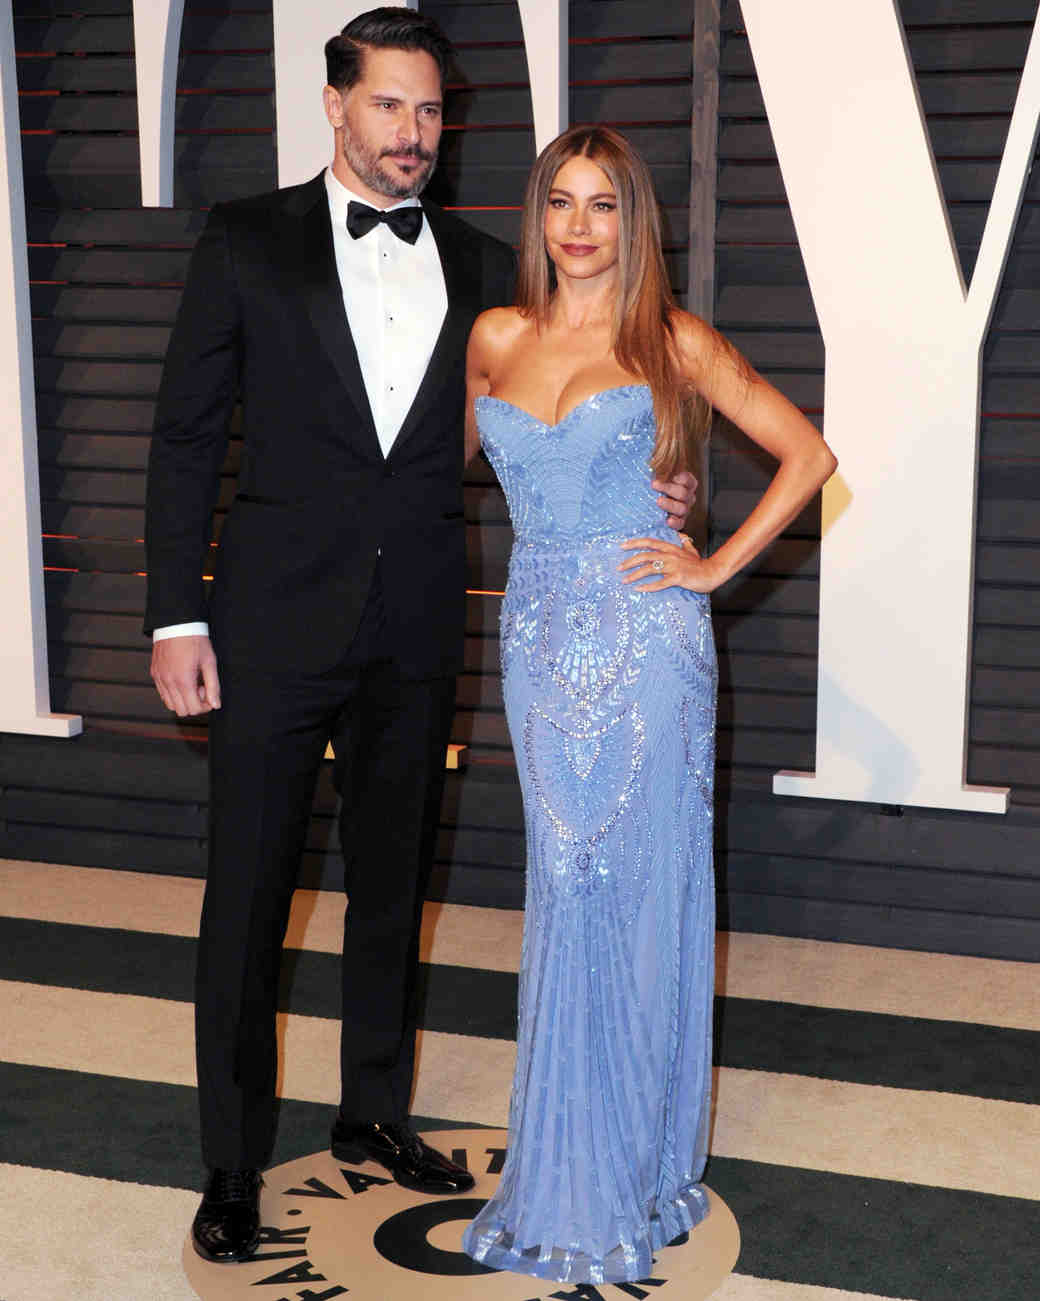 sofia-vergara-red-carpet-vanity-fair-oscar-party-with-joe-powder-blue-zuhair-murad-0815.jpg